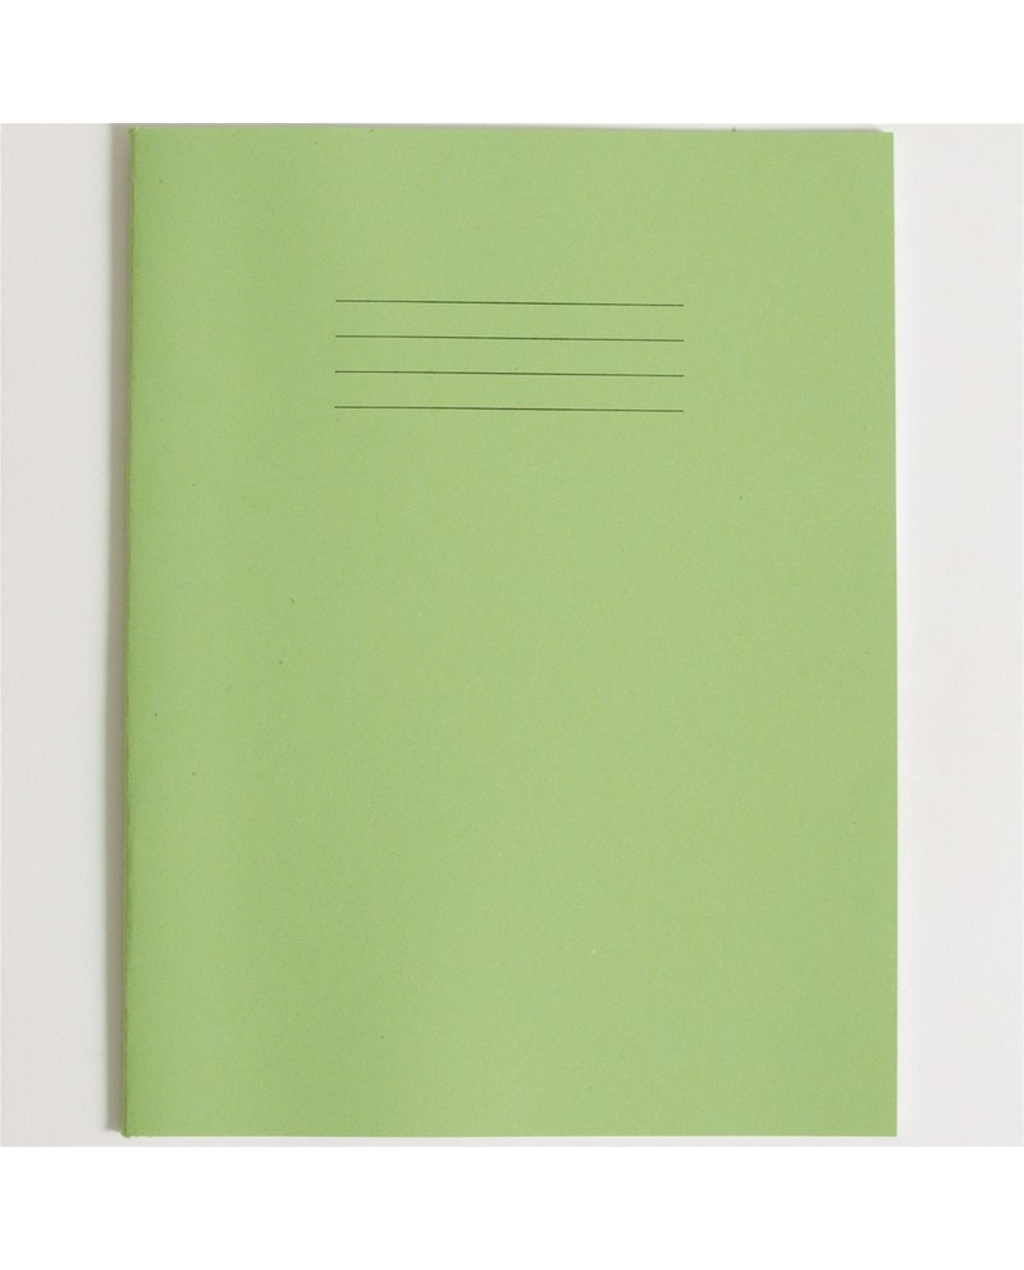 Exercise Book A4+ size (330 x 250mm) Light Green Cover 12mm Ruled 40 Pages